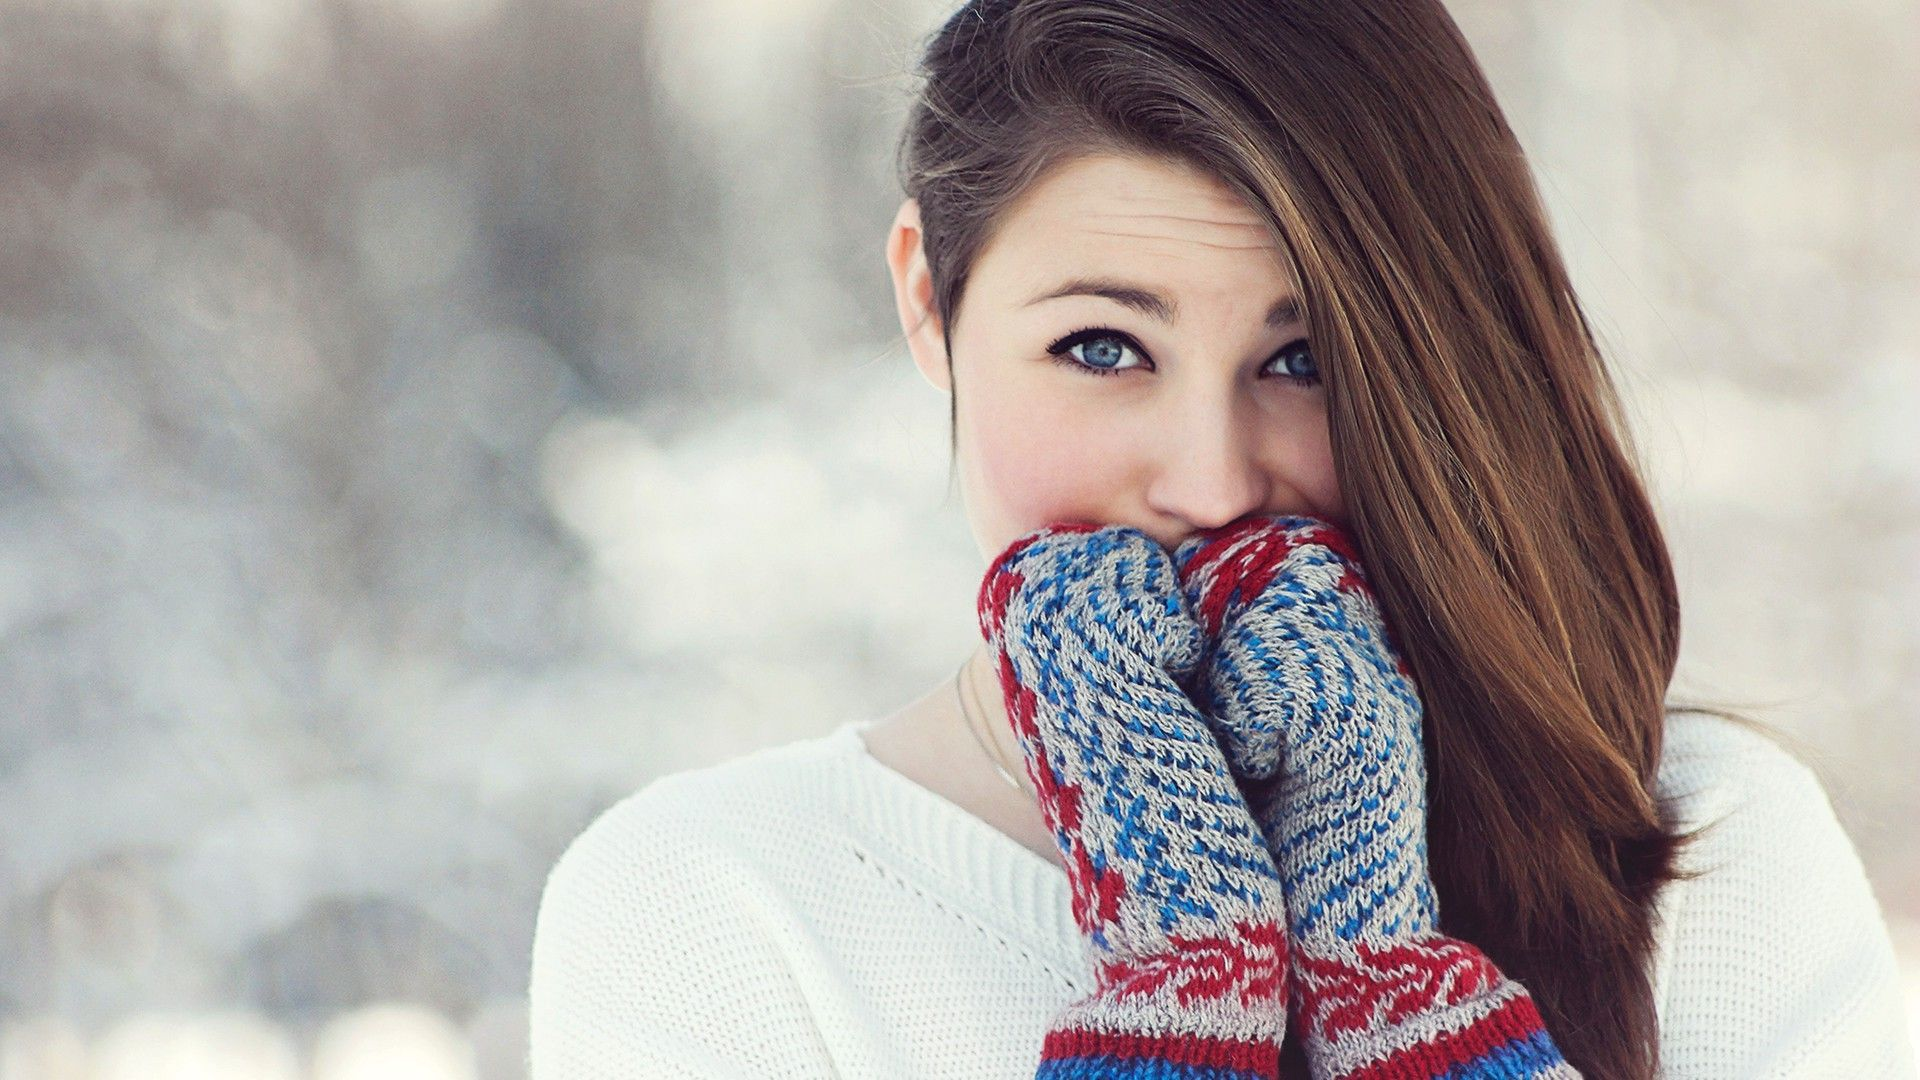 Girl Wearing Mittens in Winter